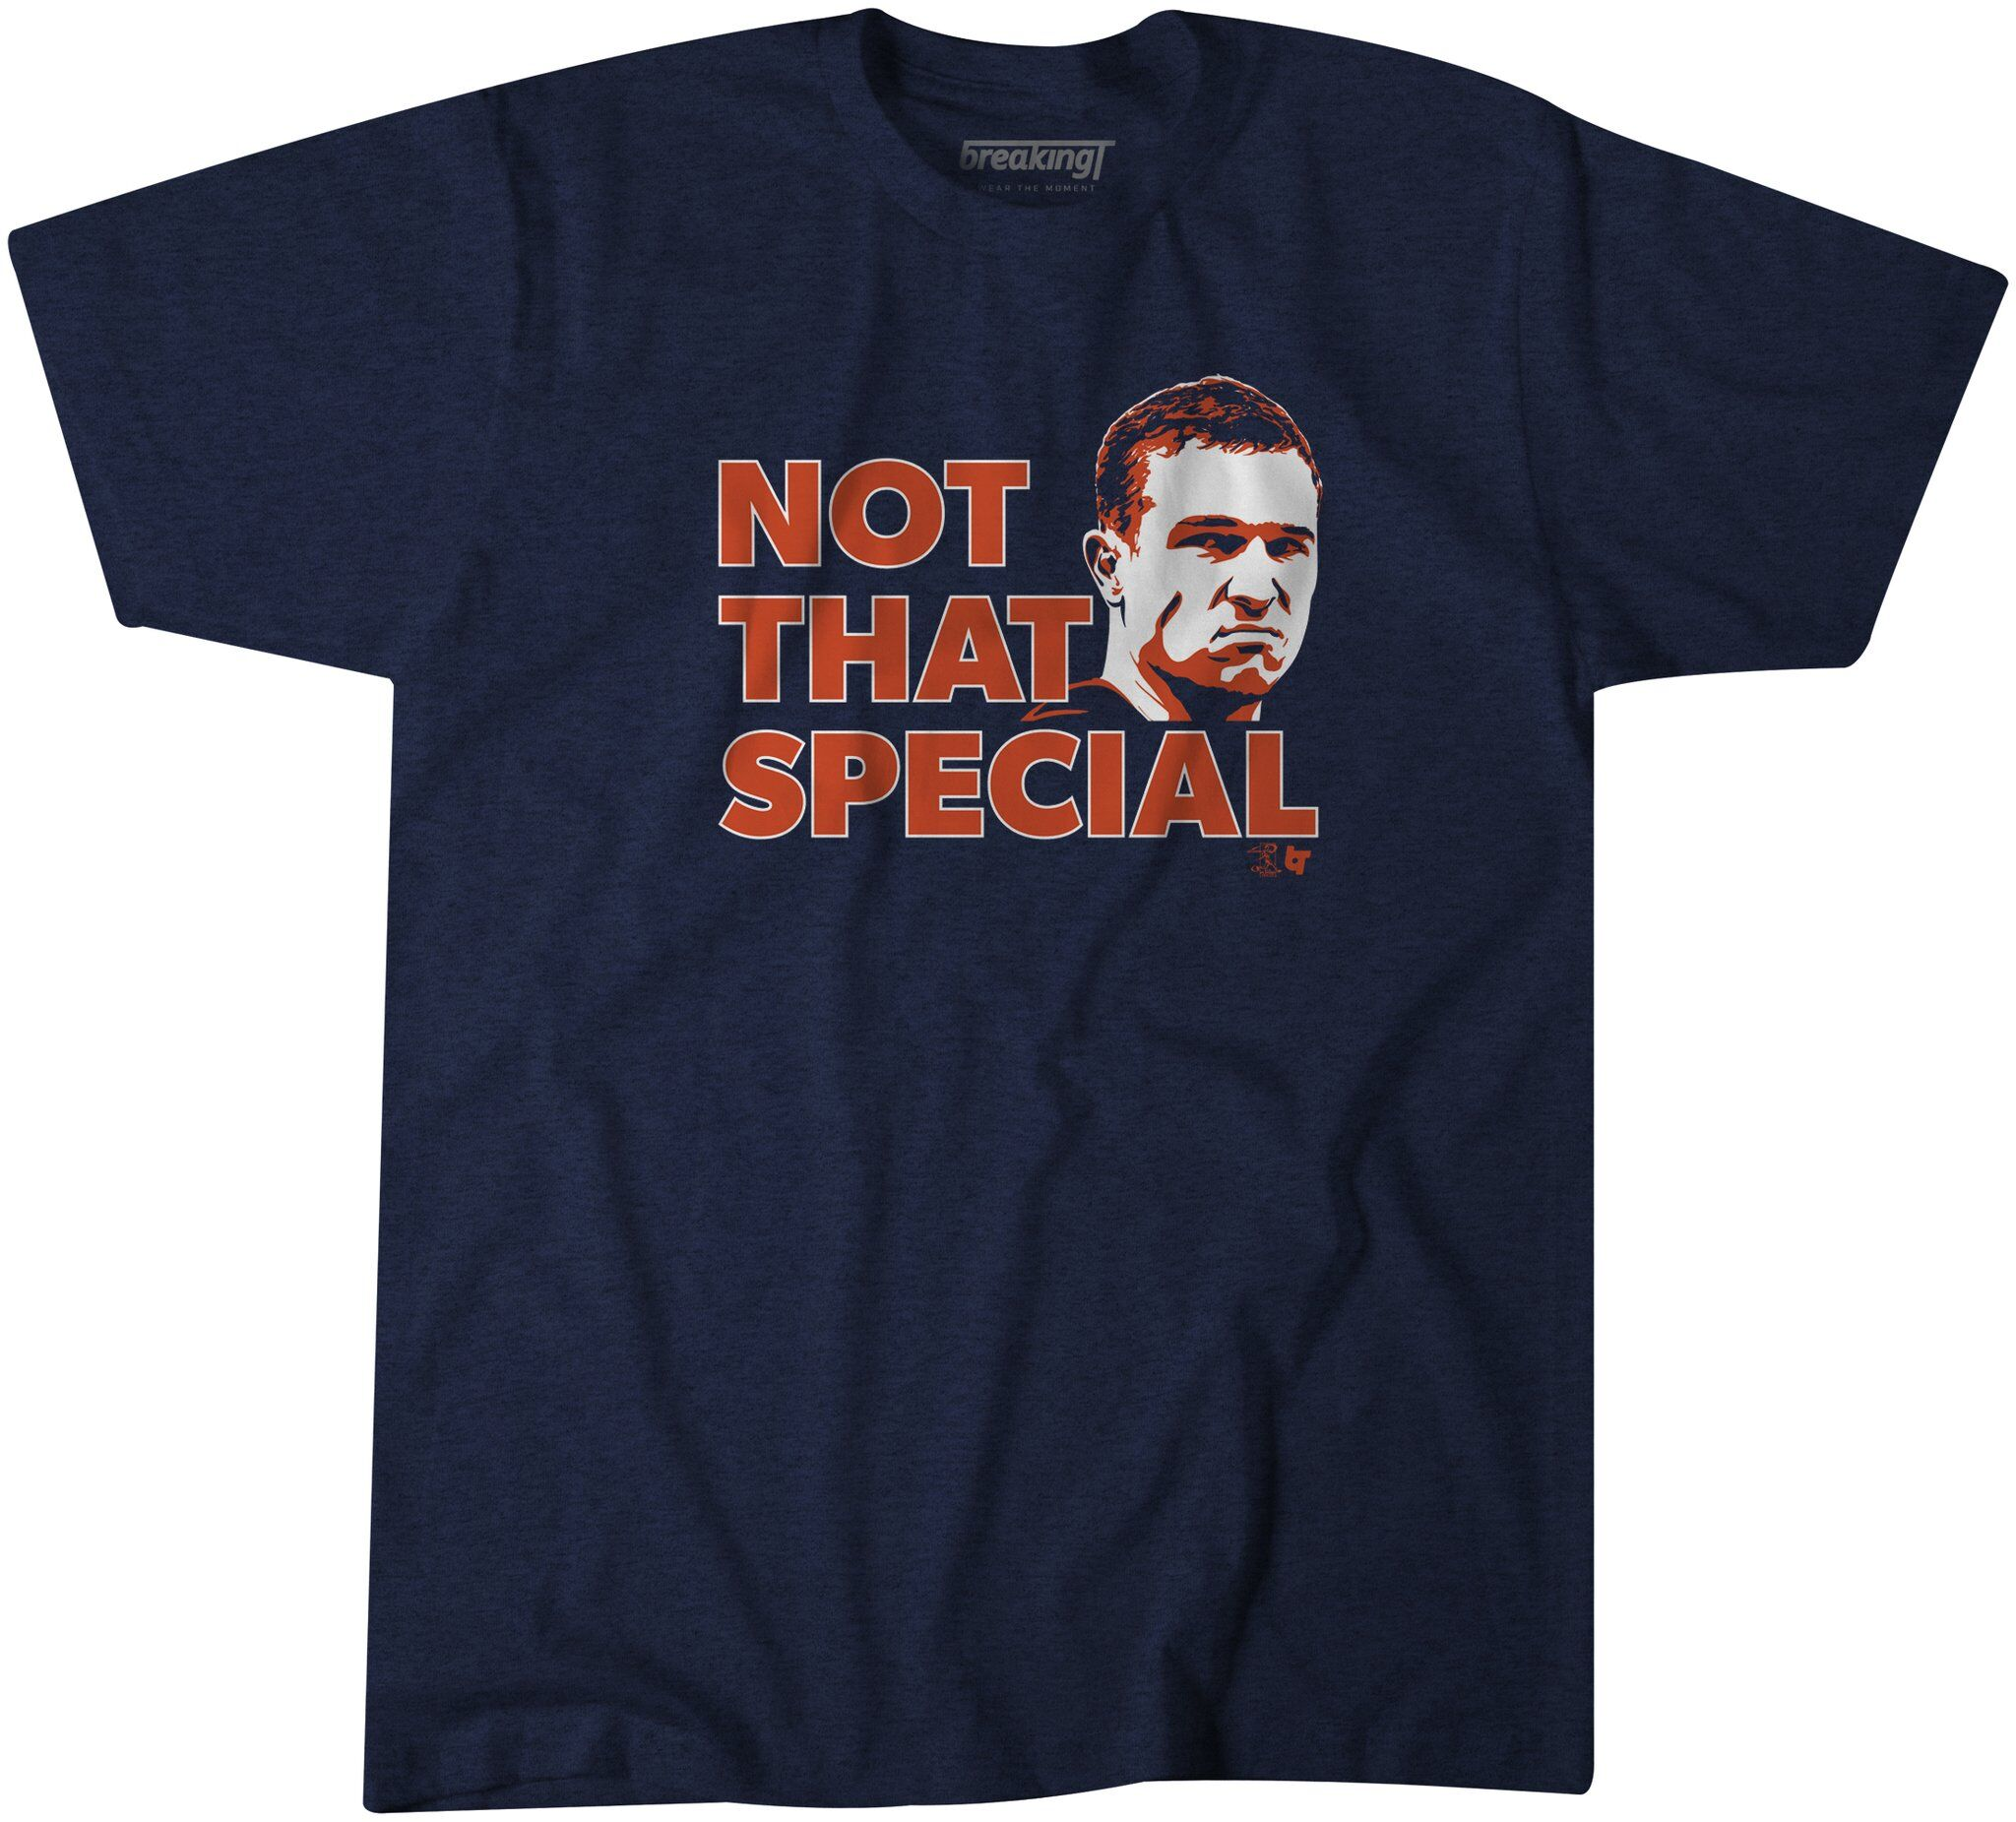 68f2c81c Houston Astros fans need this t-shirt from BreakingT